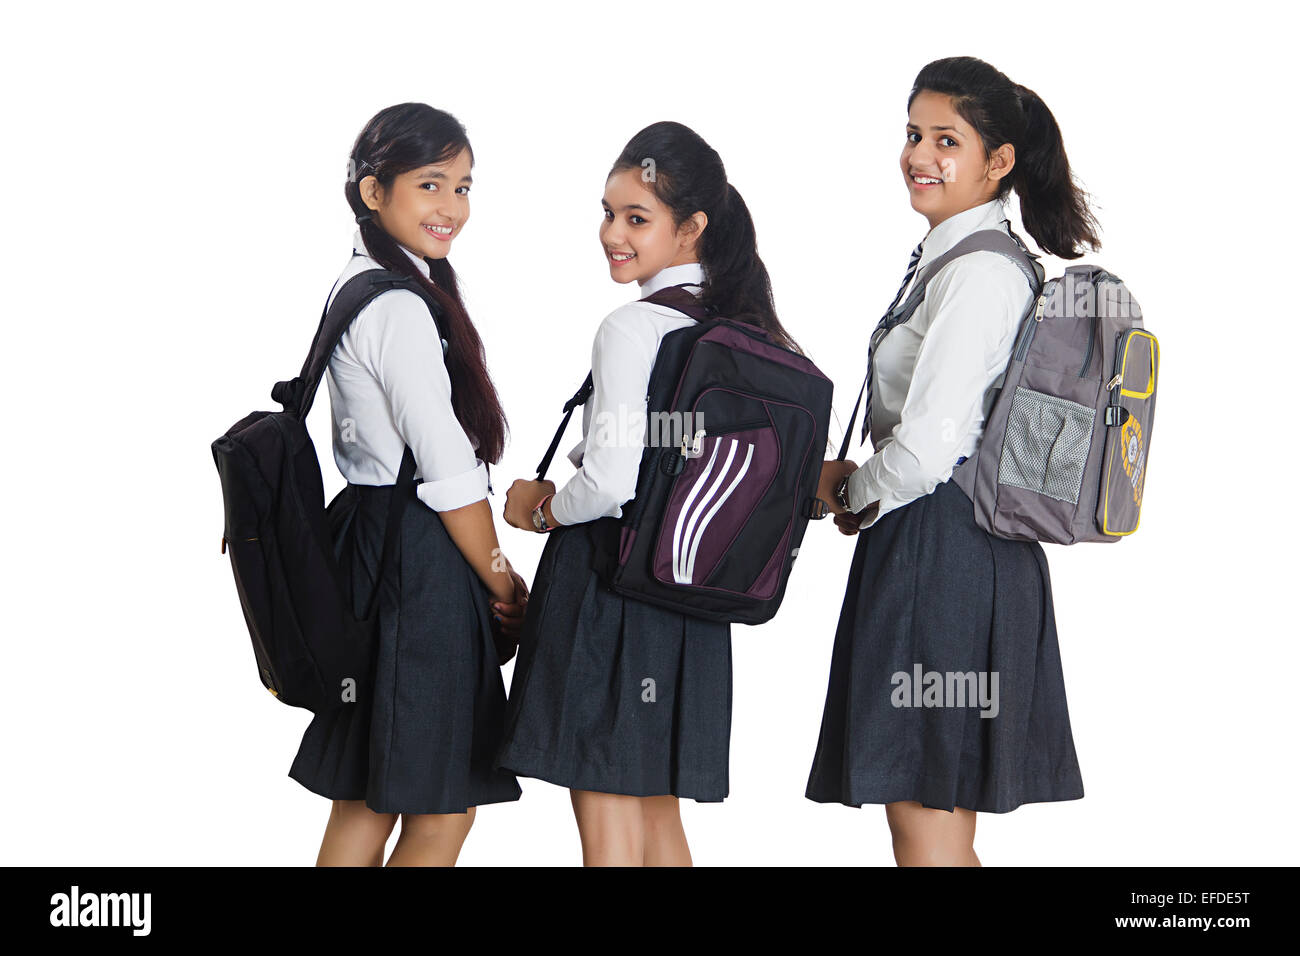 3 Indian School Girls Students Standing Stock Image